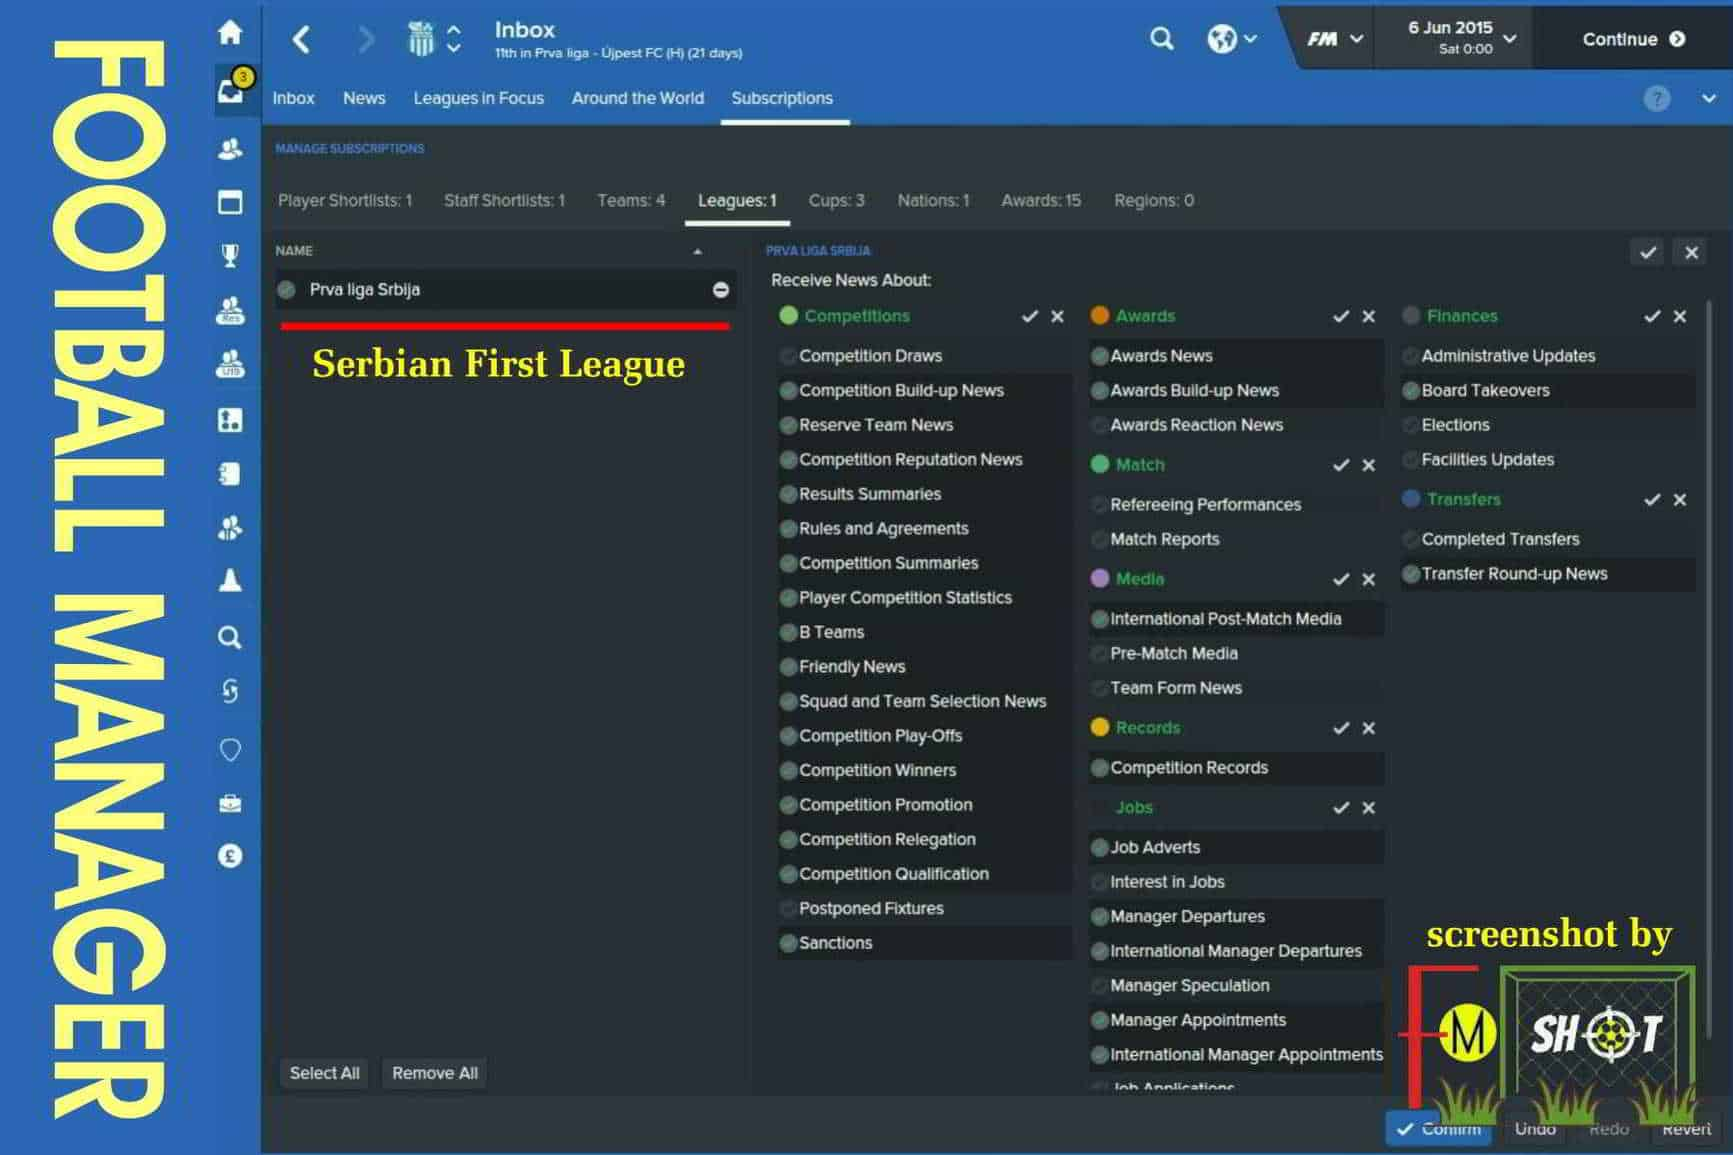 Subscriptions - Leagues in FM 2016